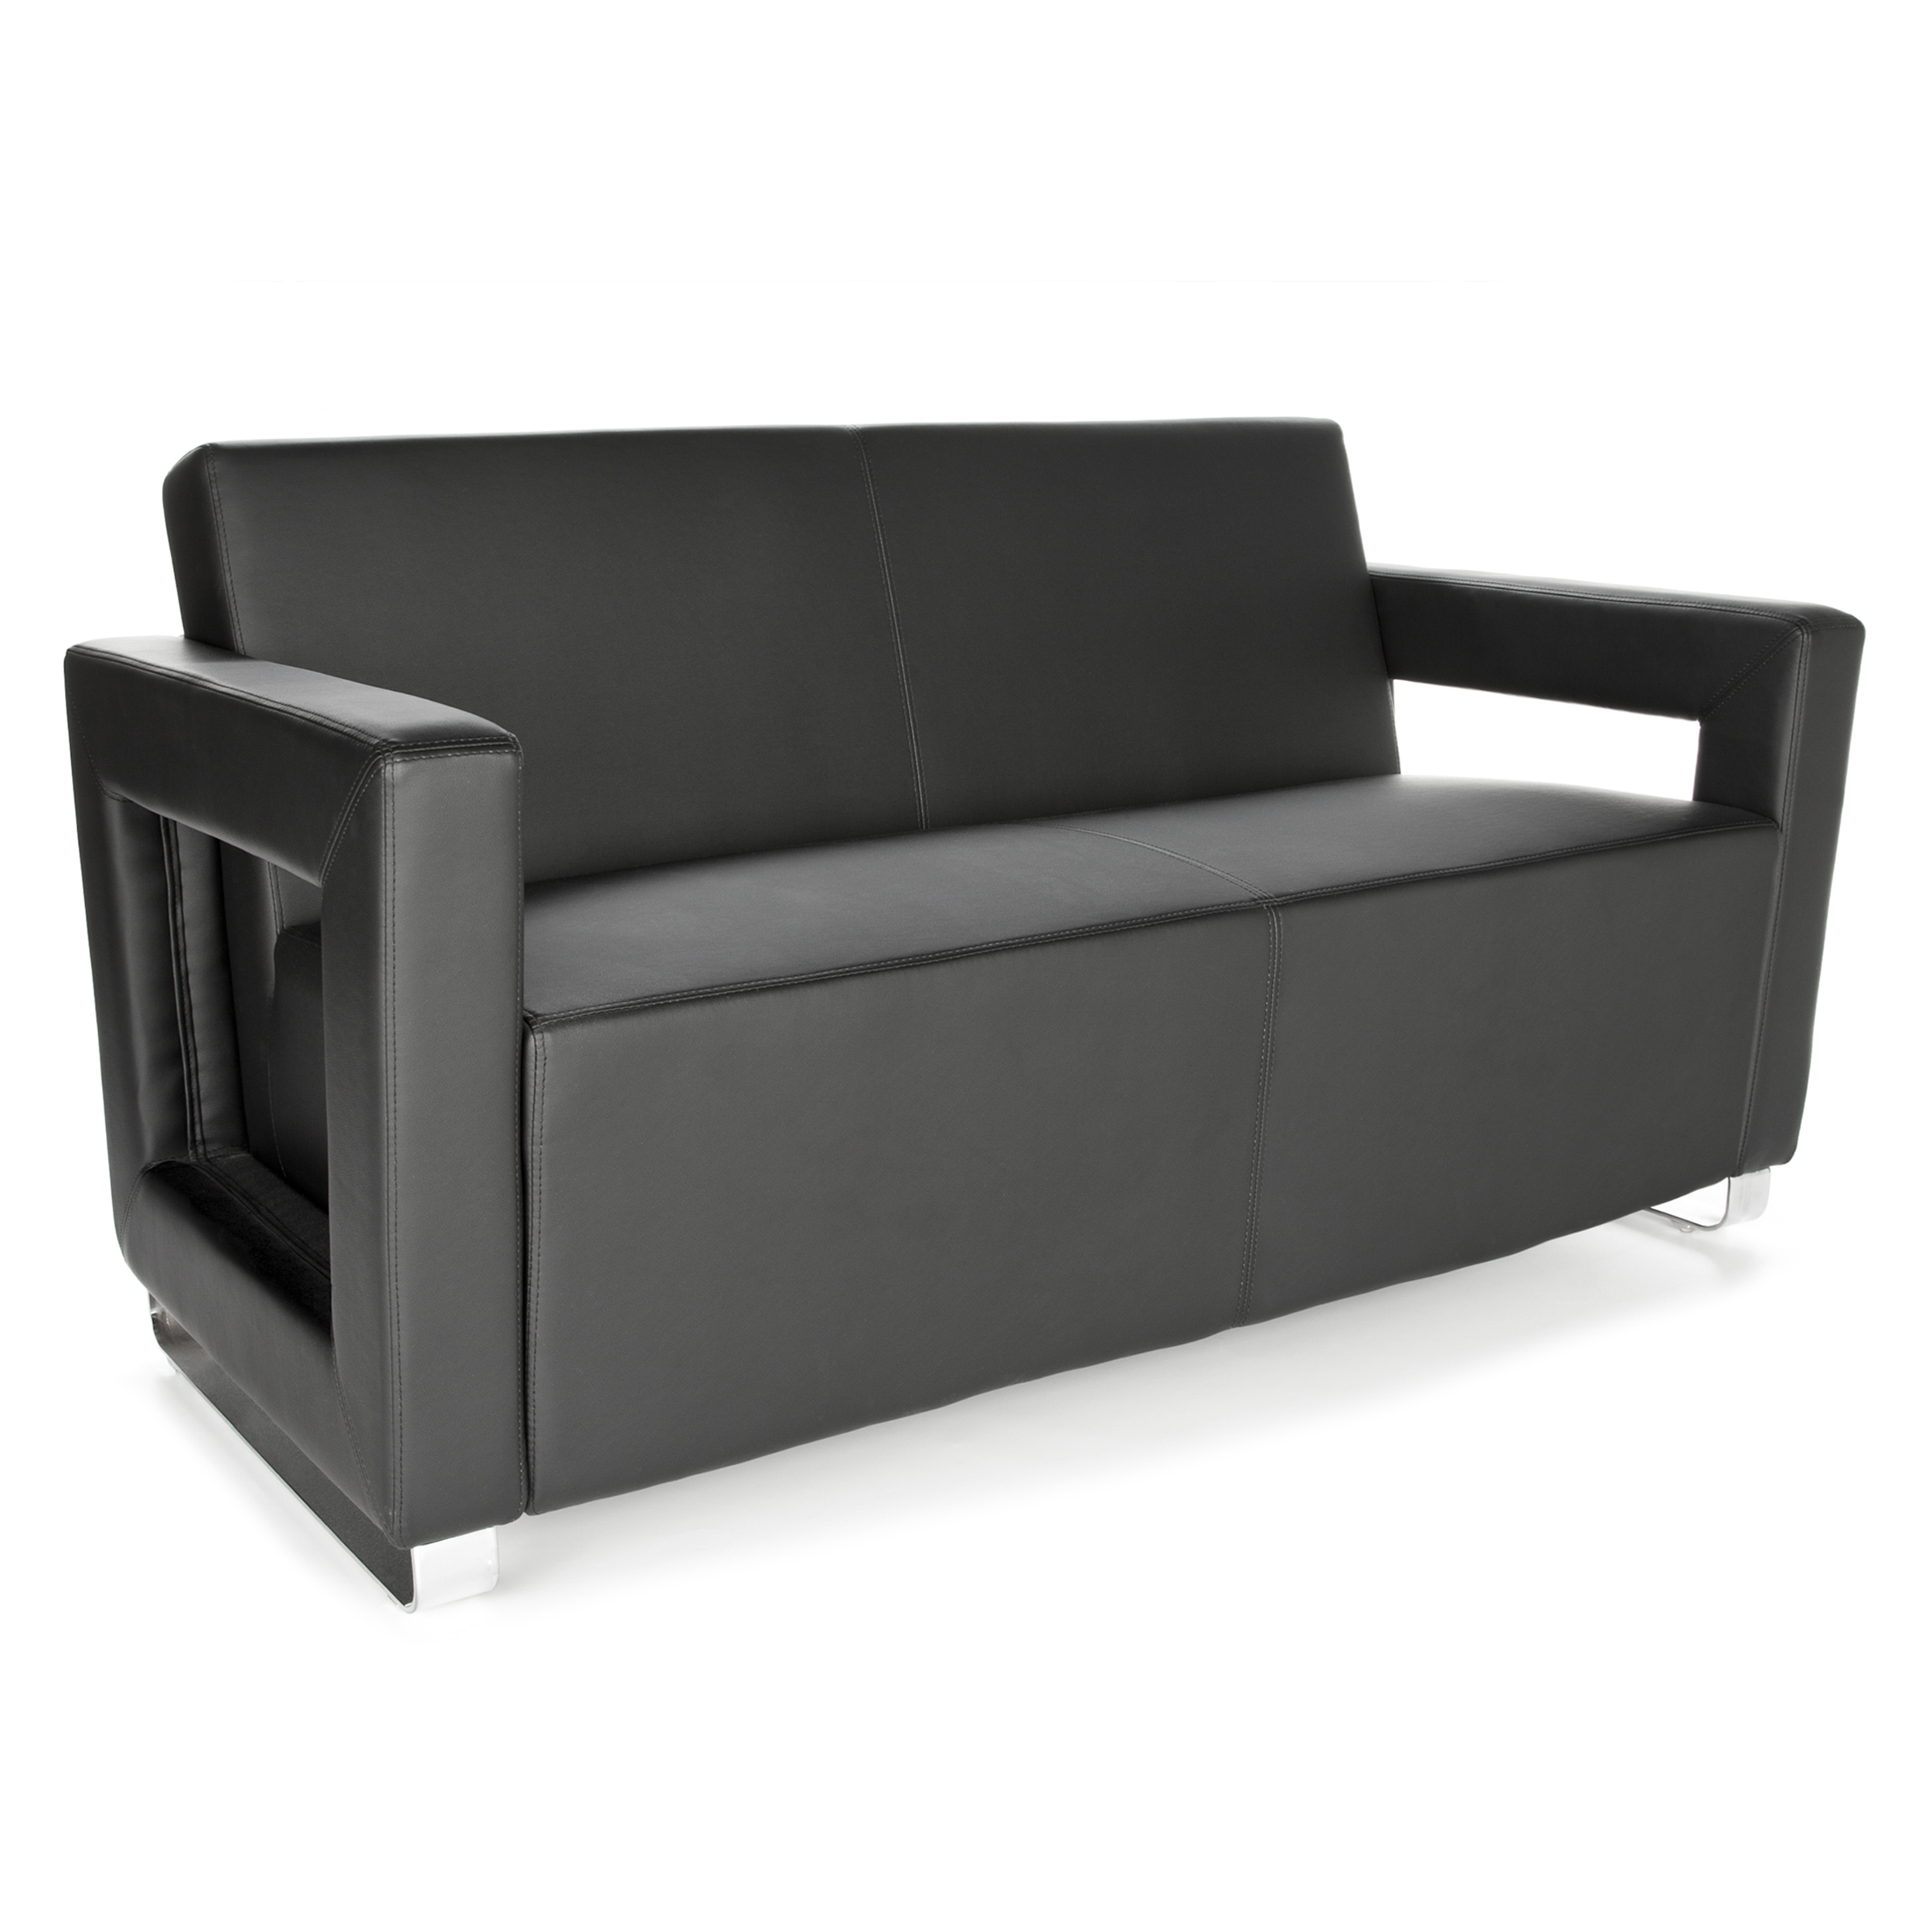 OFM Distinct Sofa